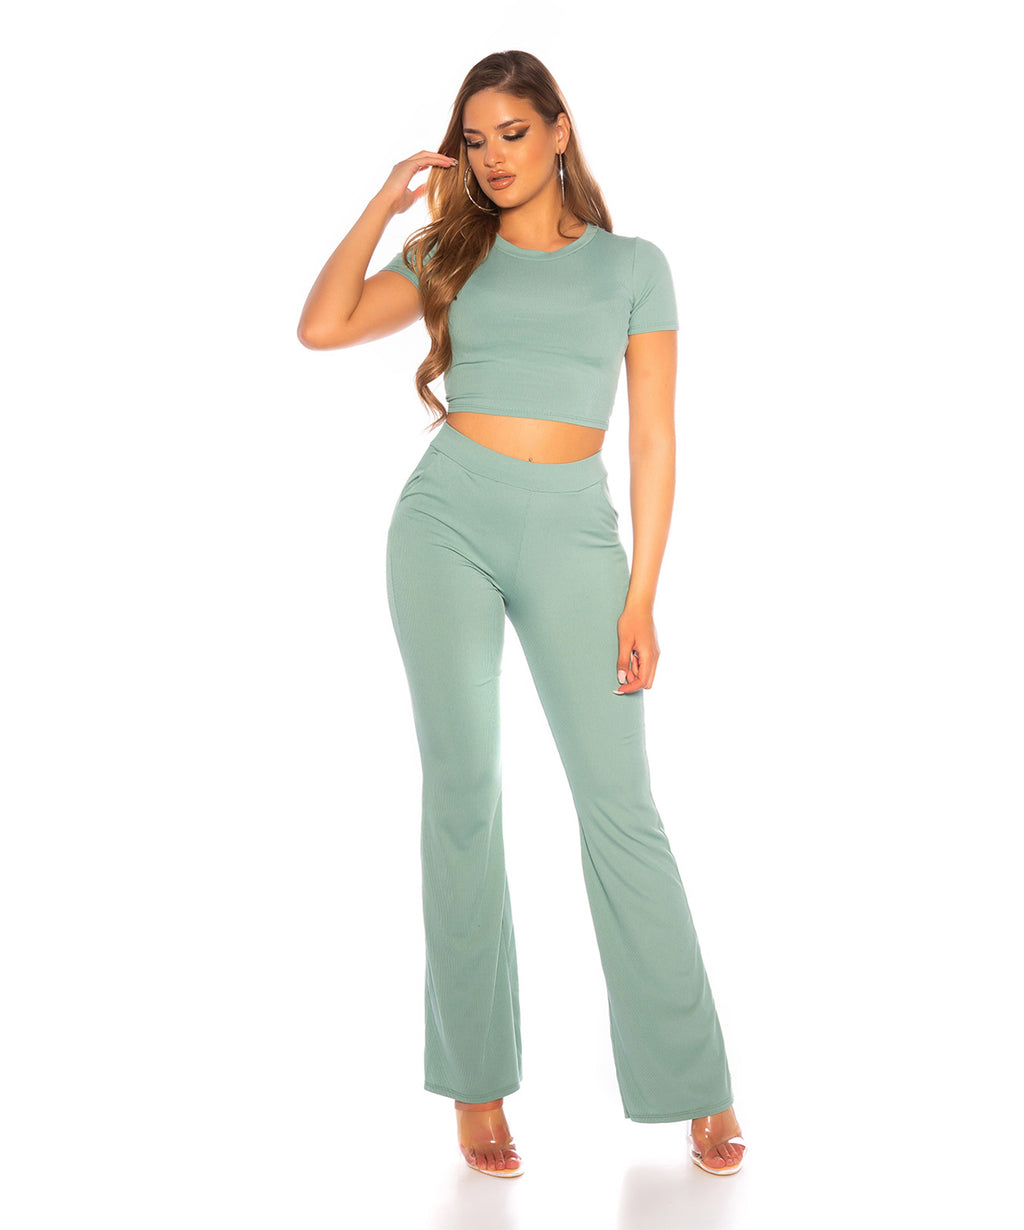 2 PIECE-SET MINT